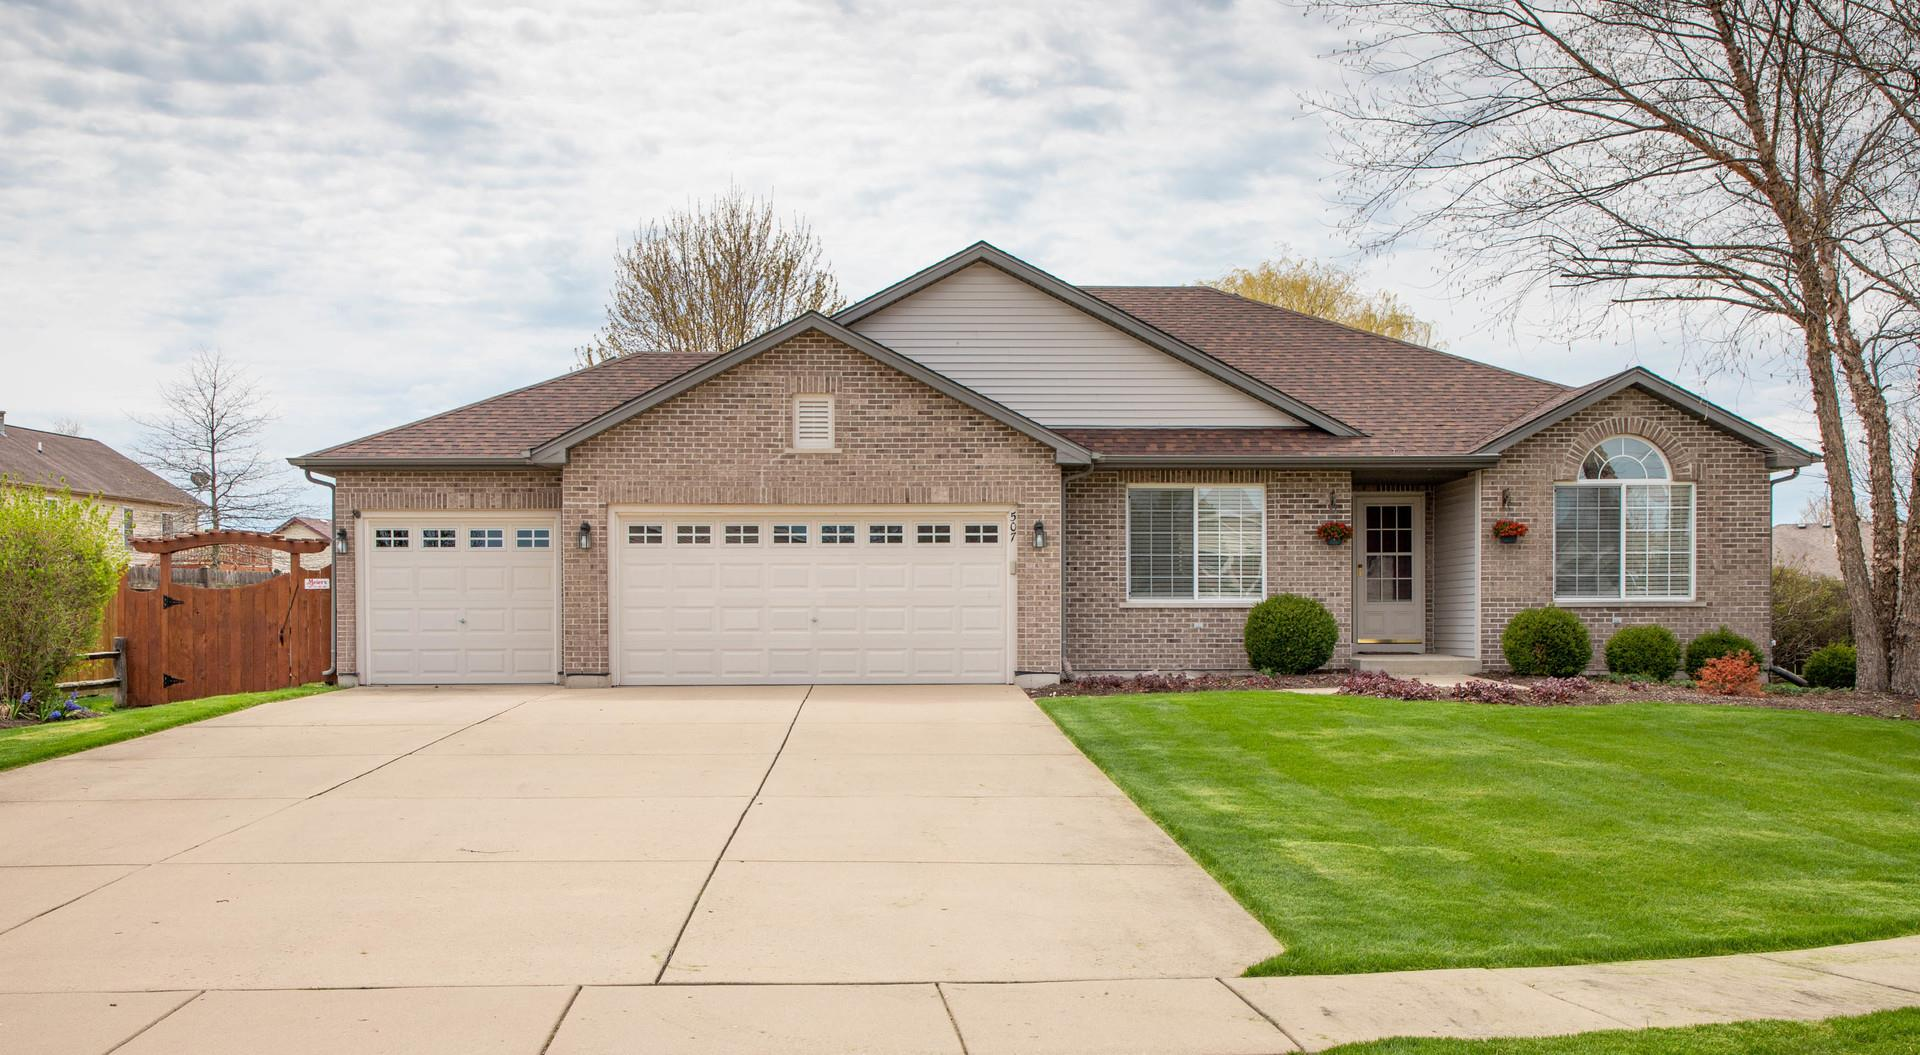 507 STEEPLECHASE Court, McHenry, IL 60050 - #: 10701958